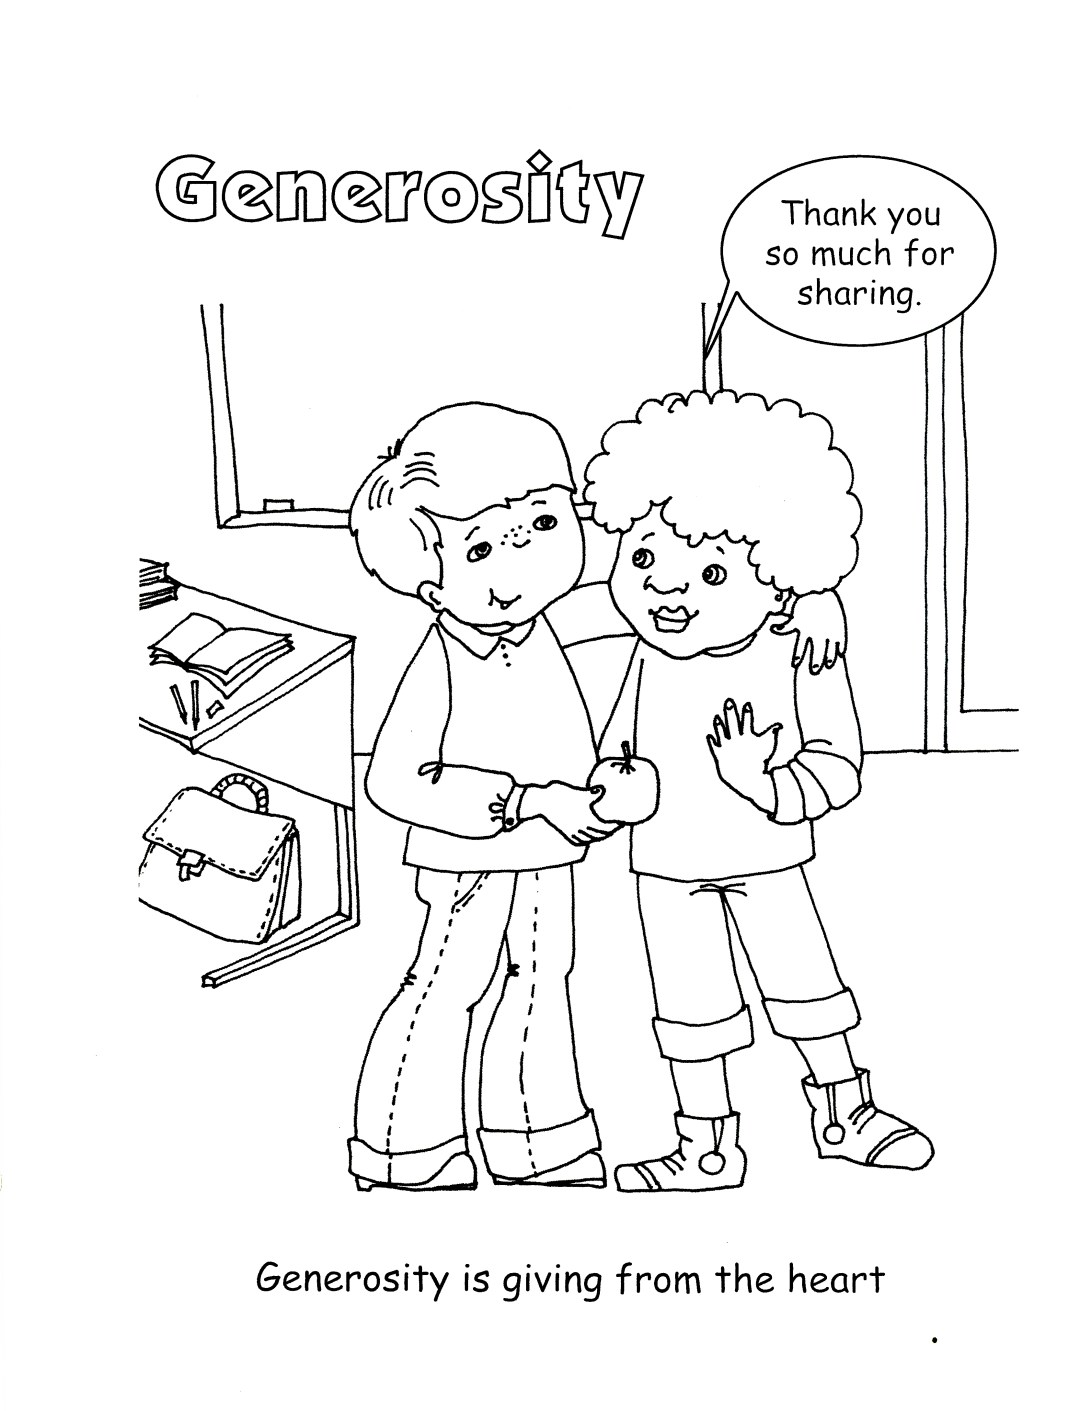 Coloring pages about gving ~ 5: Generosity | Supporting the Core Activities